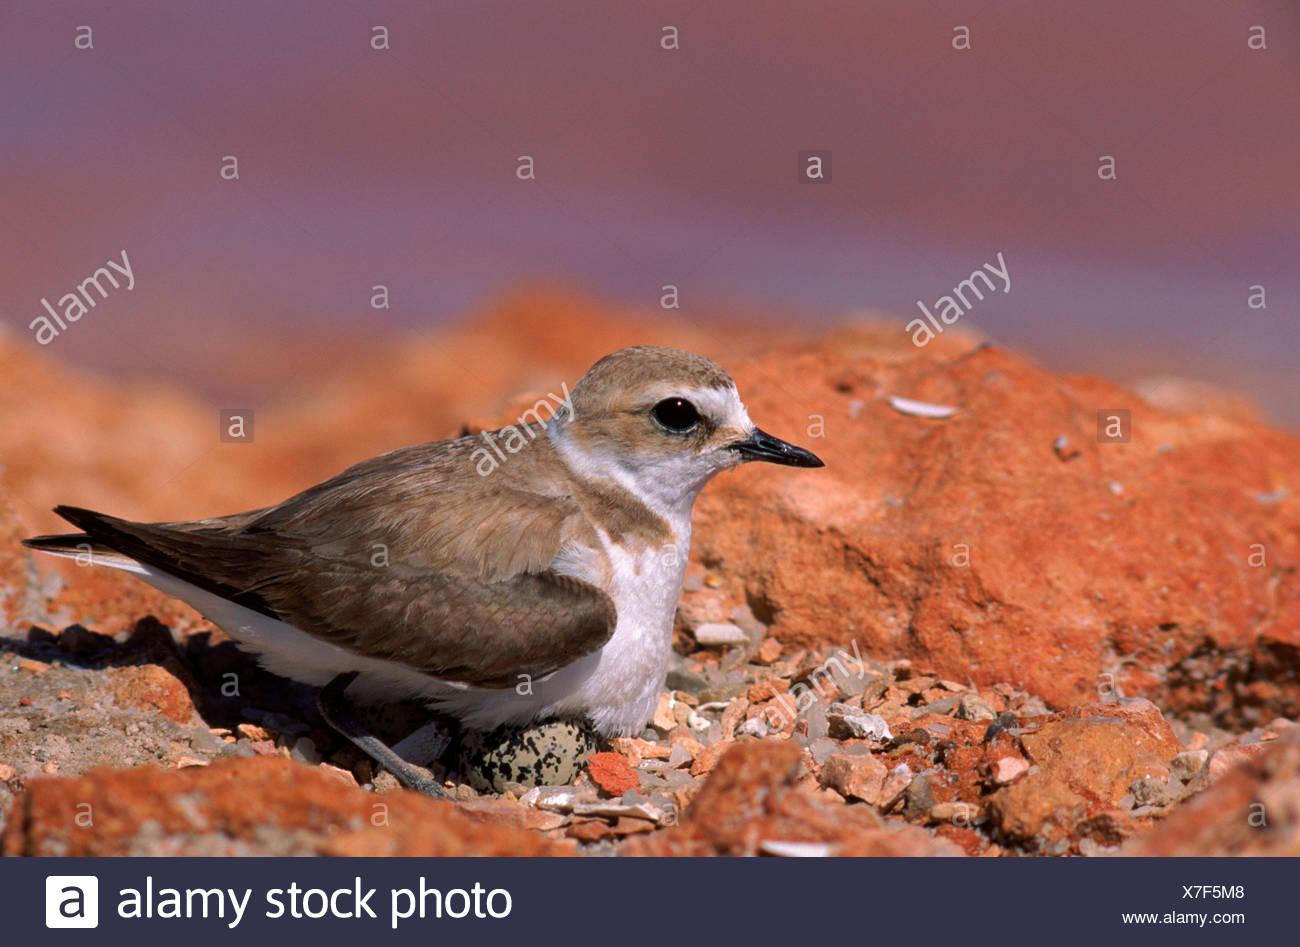 Kentish Plover female on nest with egg visible Spain Europe - Stock Image